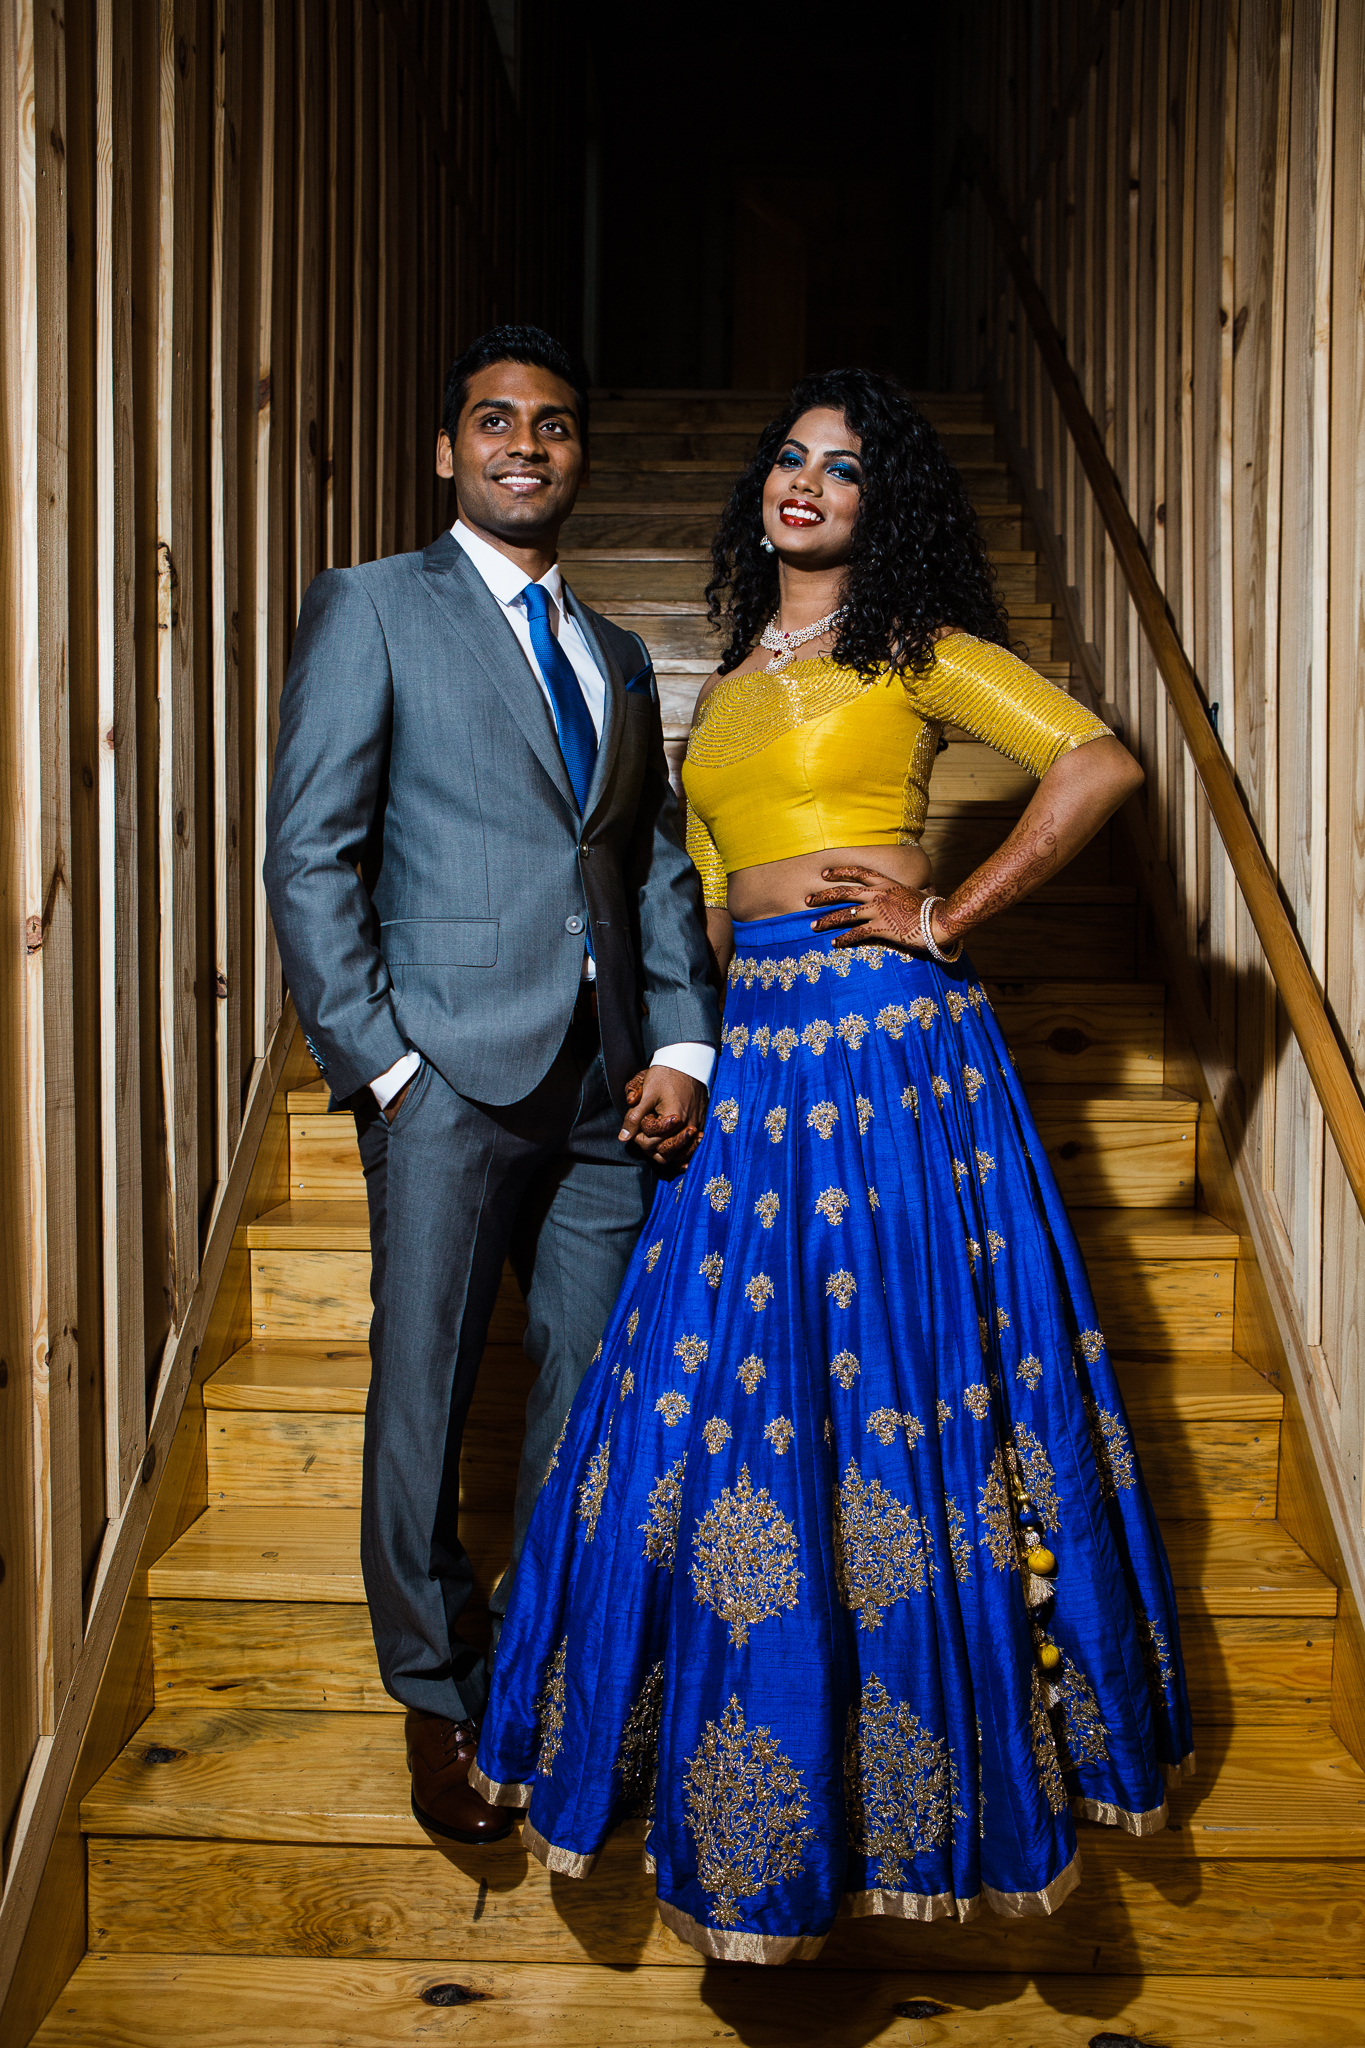 Keerthi and Kishore - Indian Wedding - elizalde photography - Dallas Photographer - South Asian Wedding Photographer - The SPRINGS Event Venue (181 of 226).jpg